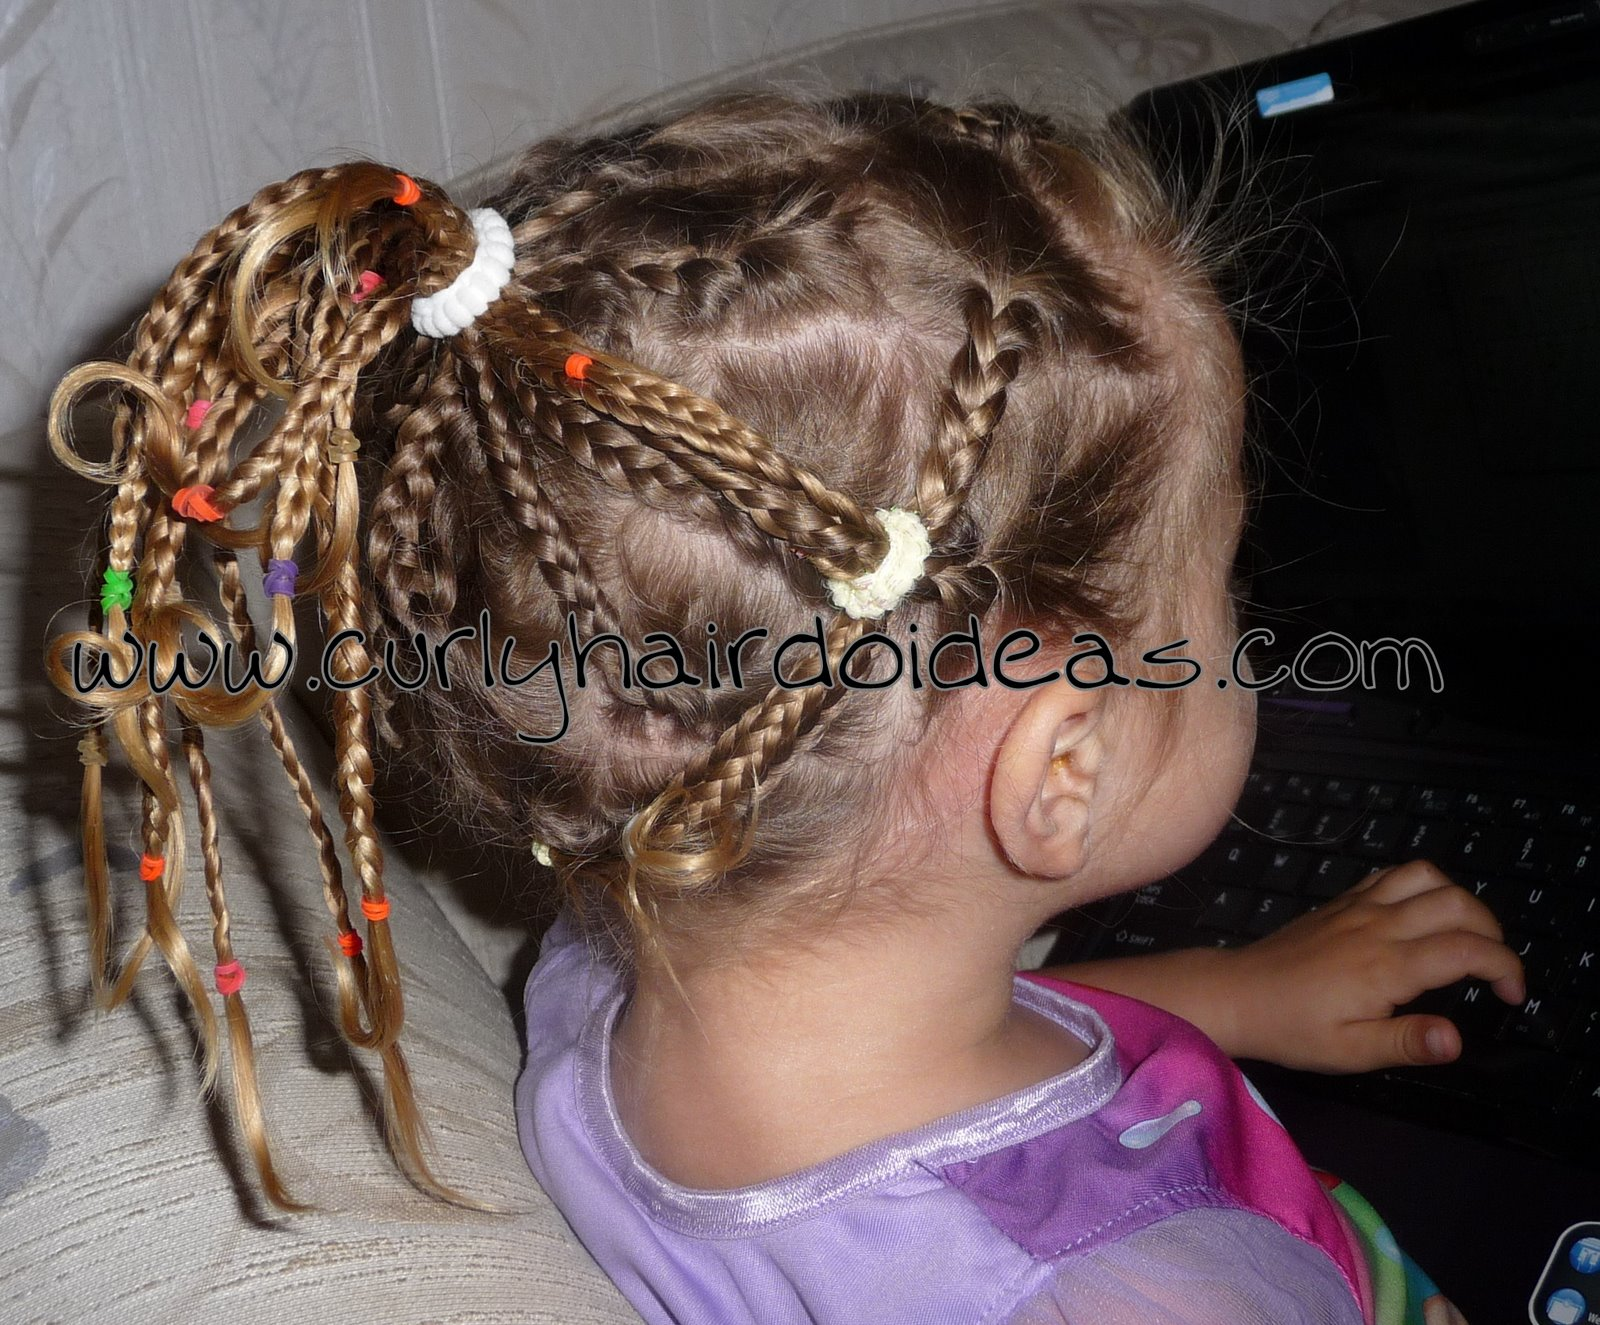 Miraculous Curly Hairdo Ideas Hair Carnival Cute Toddler Hairstyles Hairstyle Inspiration Daily Dogsangcom